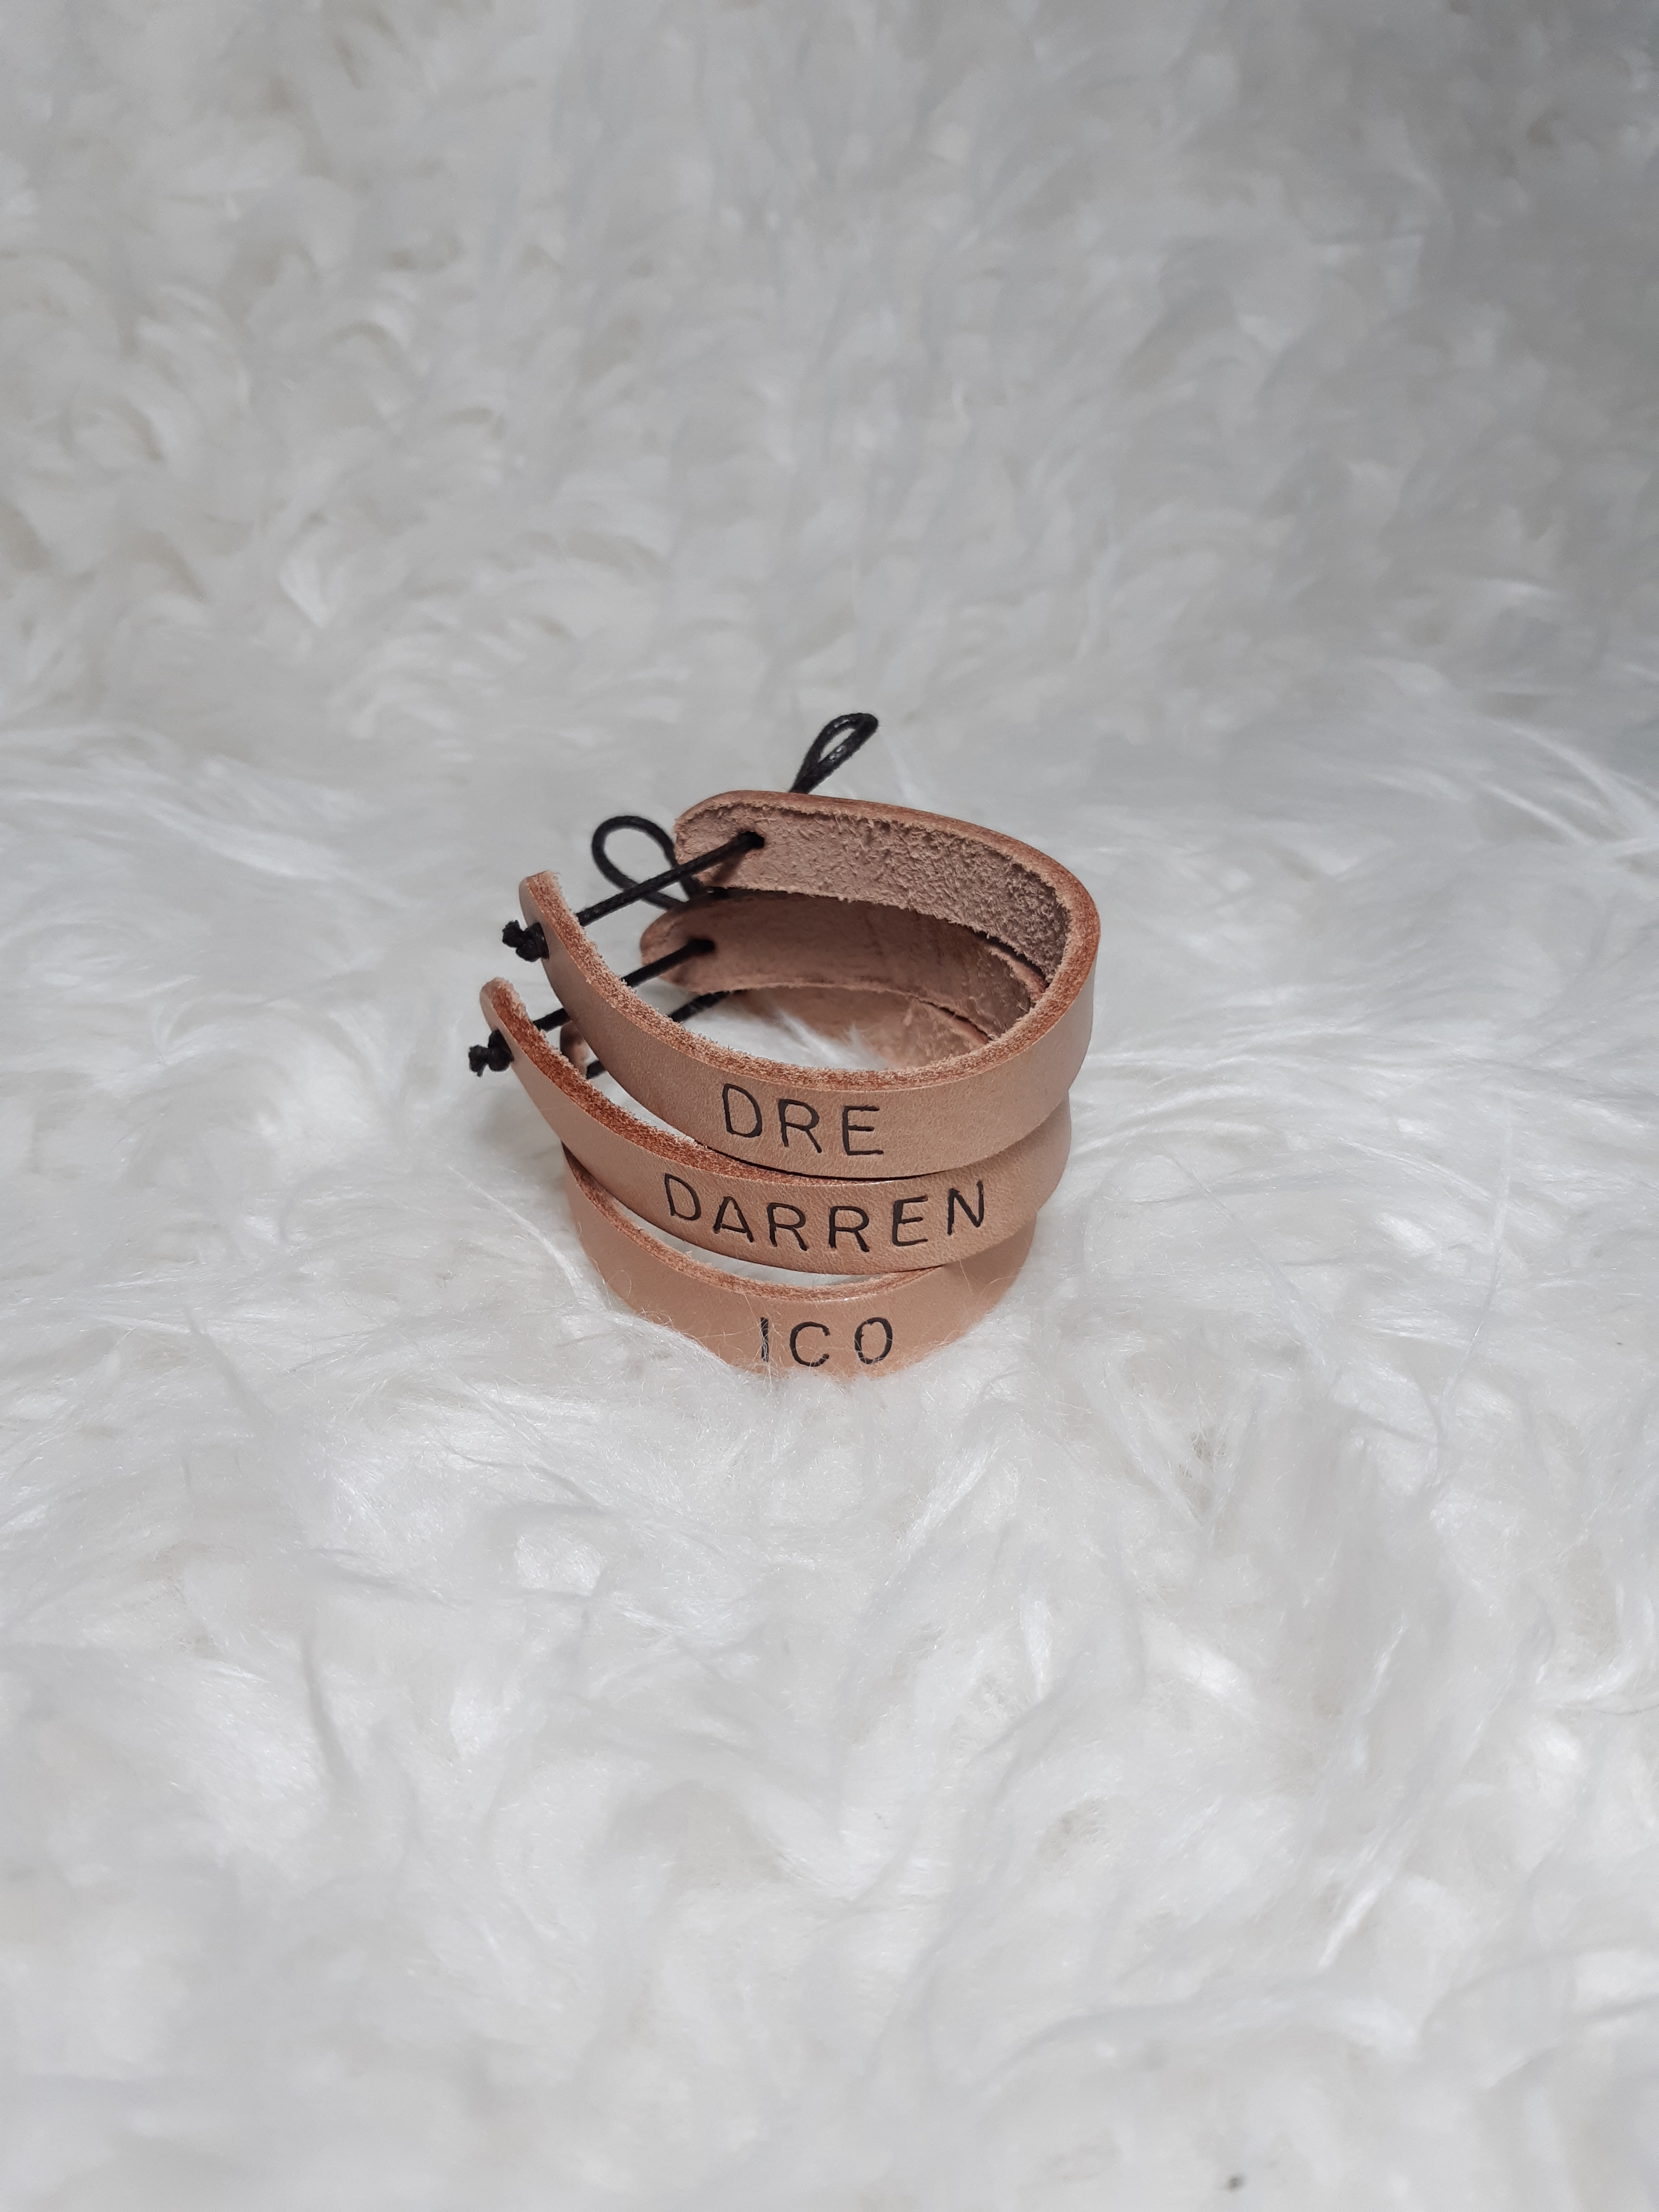 gelang porto by honeyjosep.wordpress.com